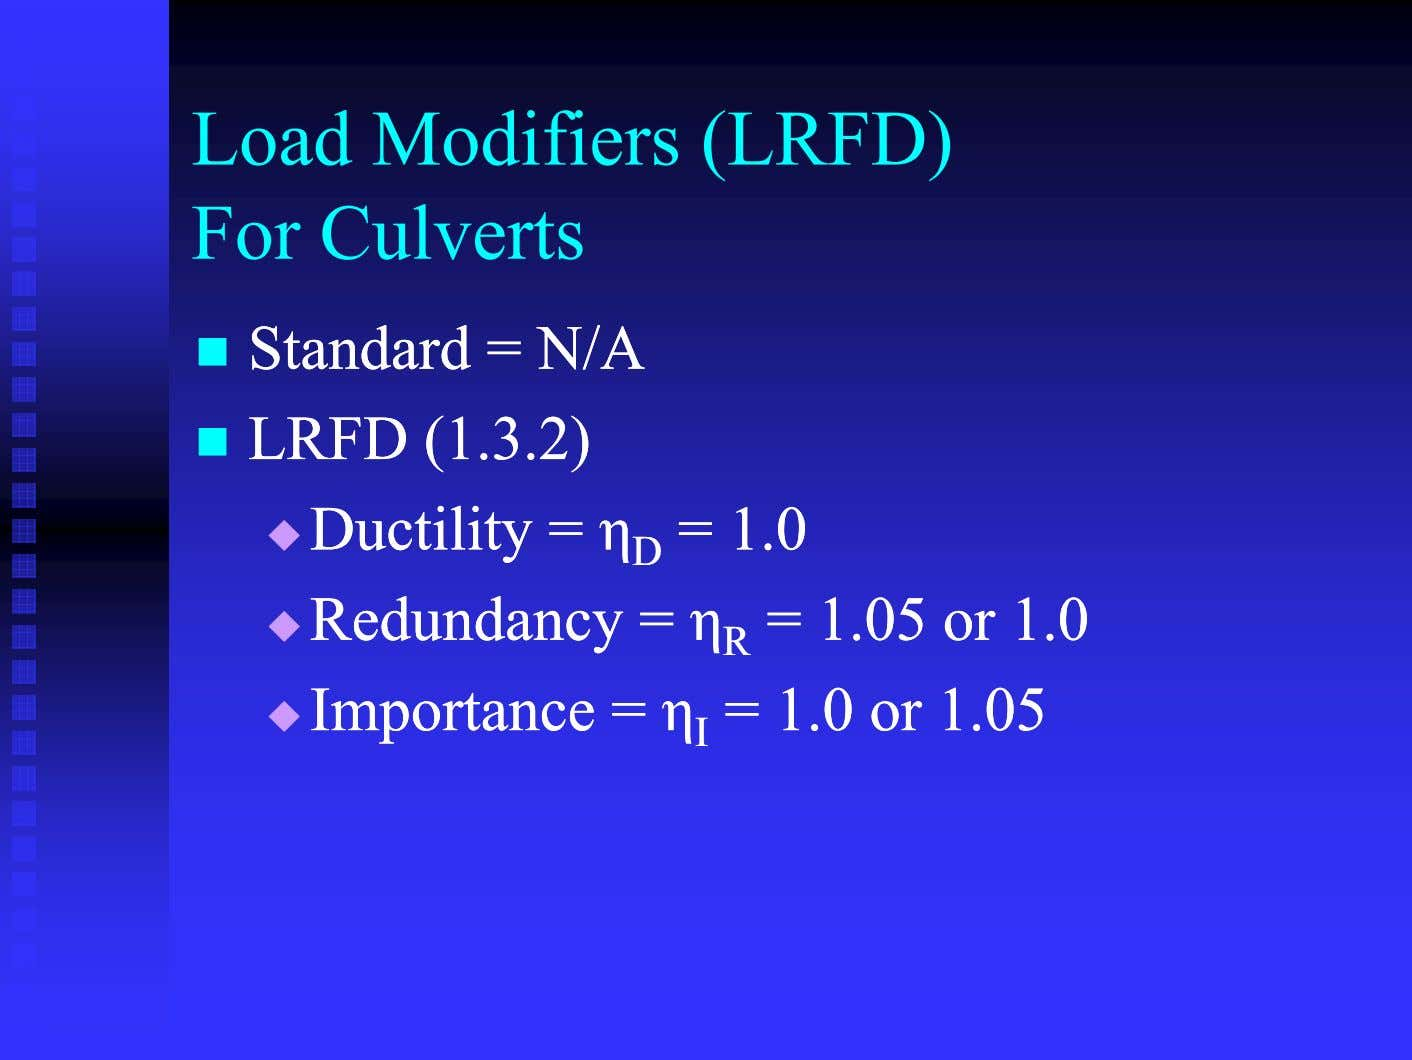 Load Modifiers (LRFD) For Culverts  StandardStandard == N/AN/A  LRFDLRFD (1(1 33 2)2) 